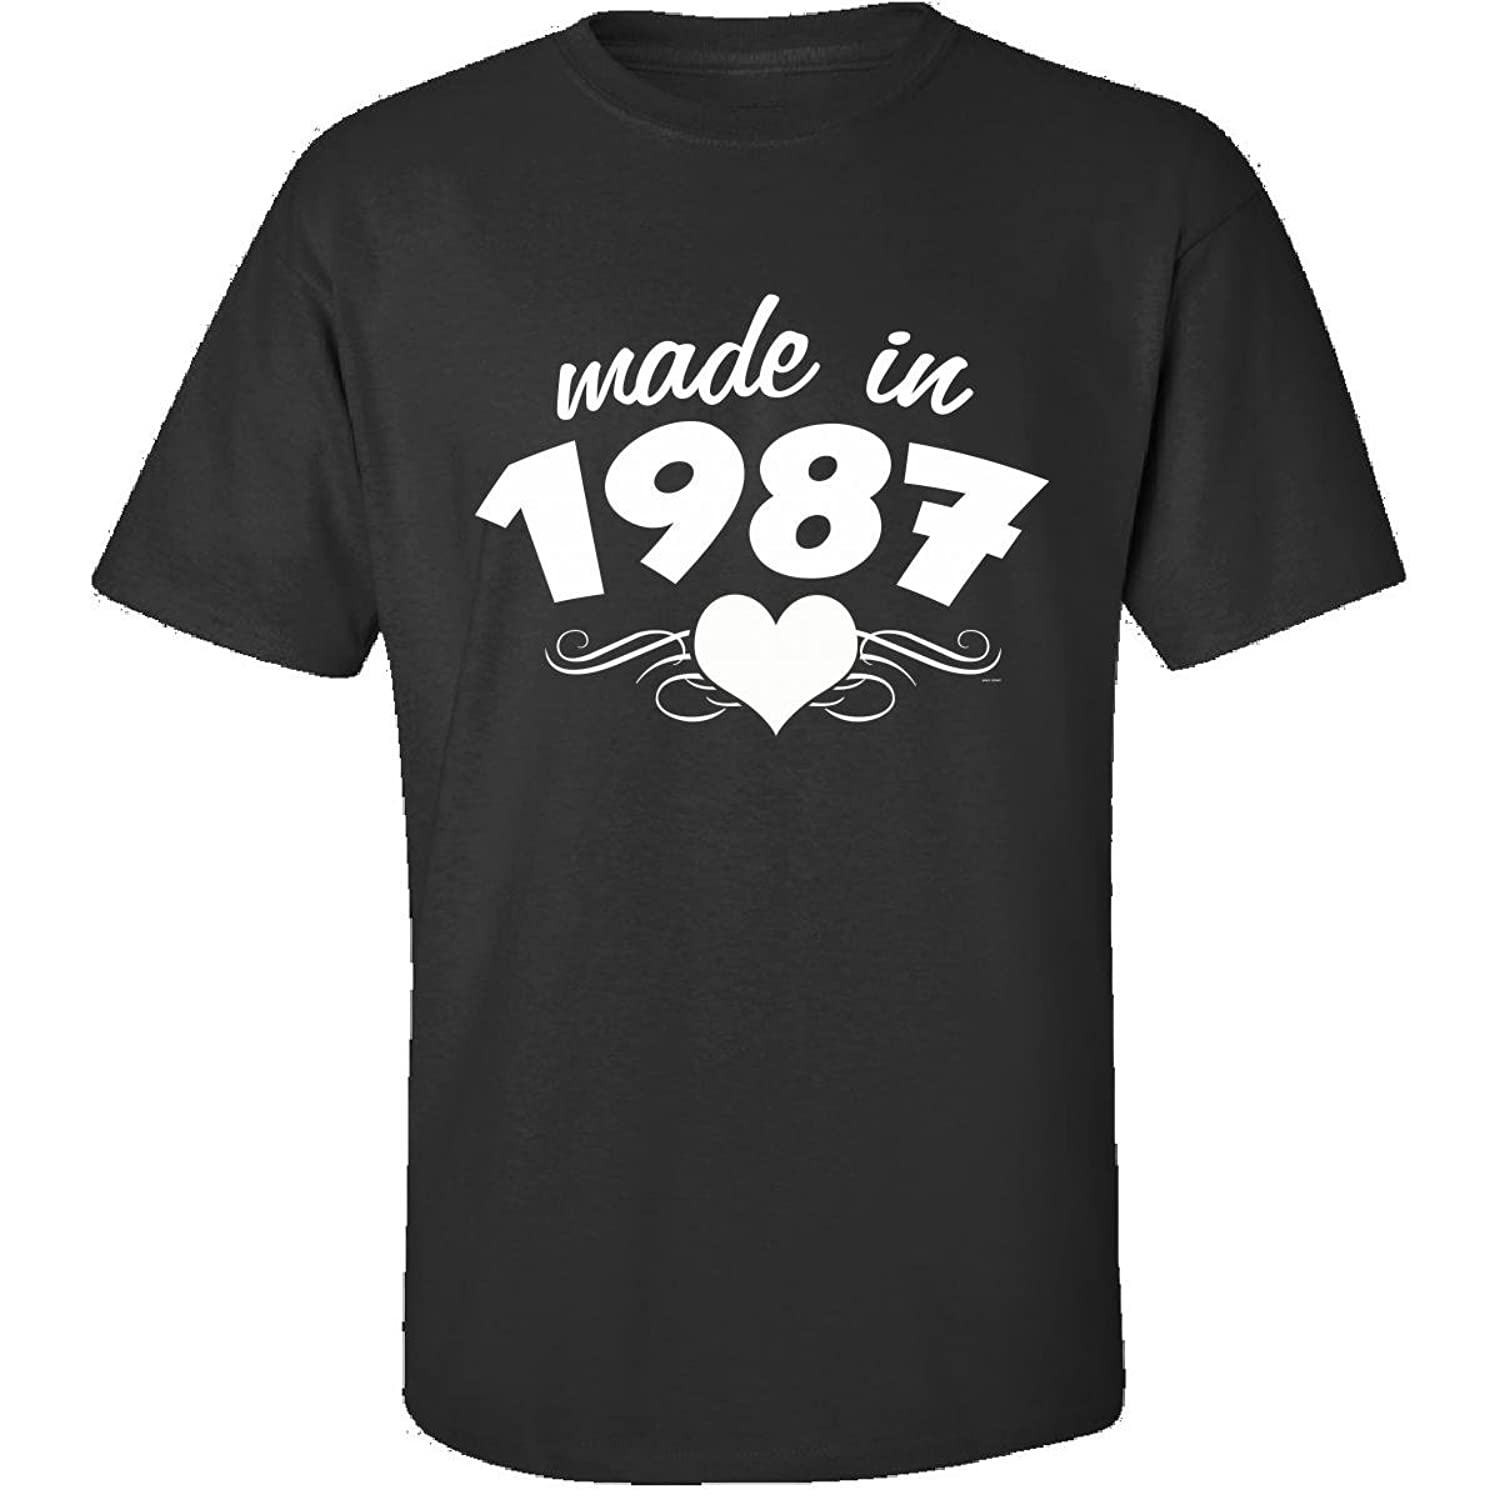 30th Birthday Gifts For Her Unique Made In 1987 Heart Design - Adult Shirt